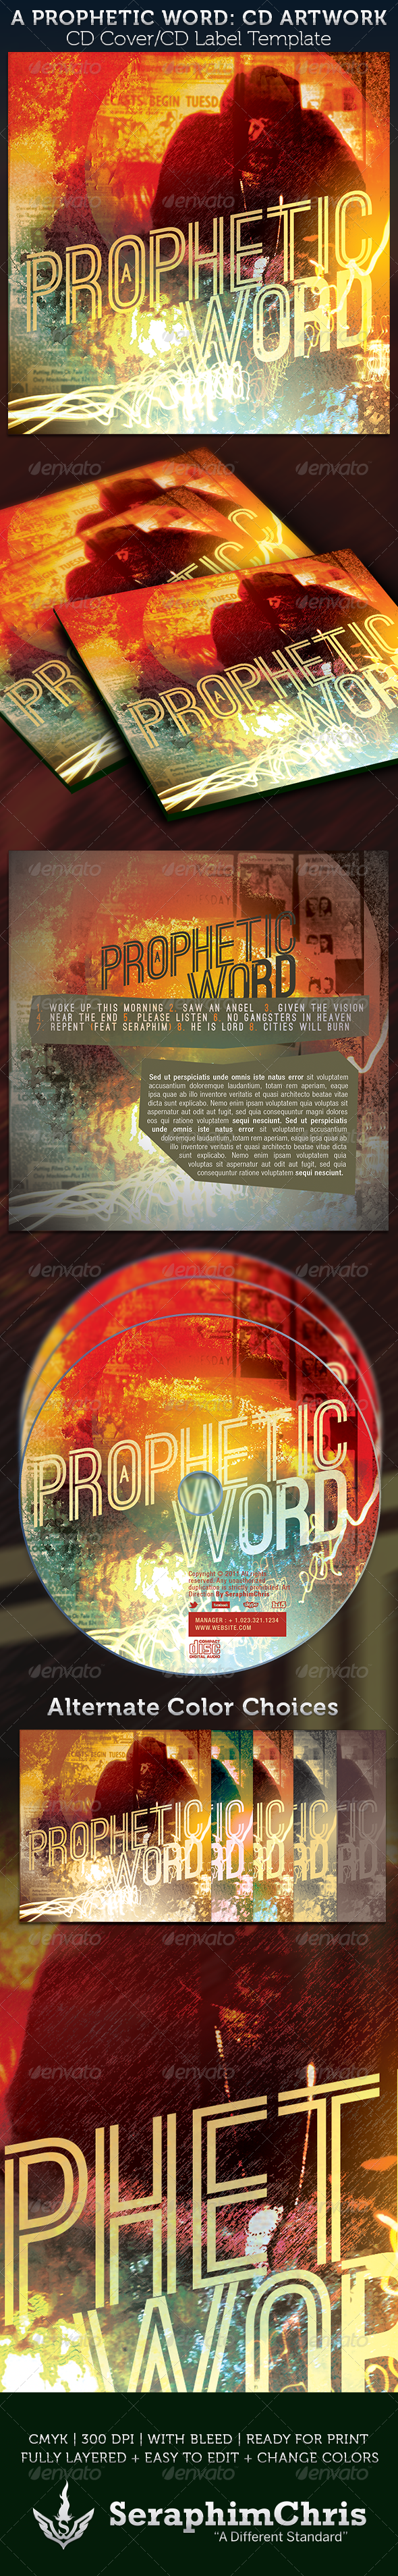 Prophetic Word CD Cover Artwork Template - CD & DVD artwork Print Templates